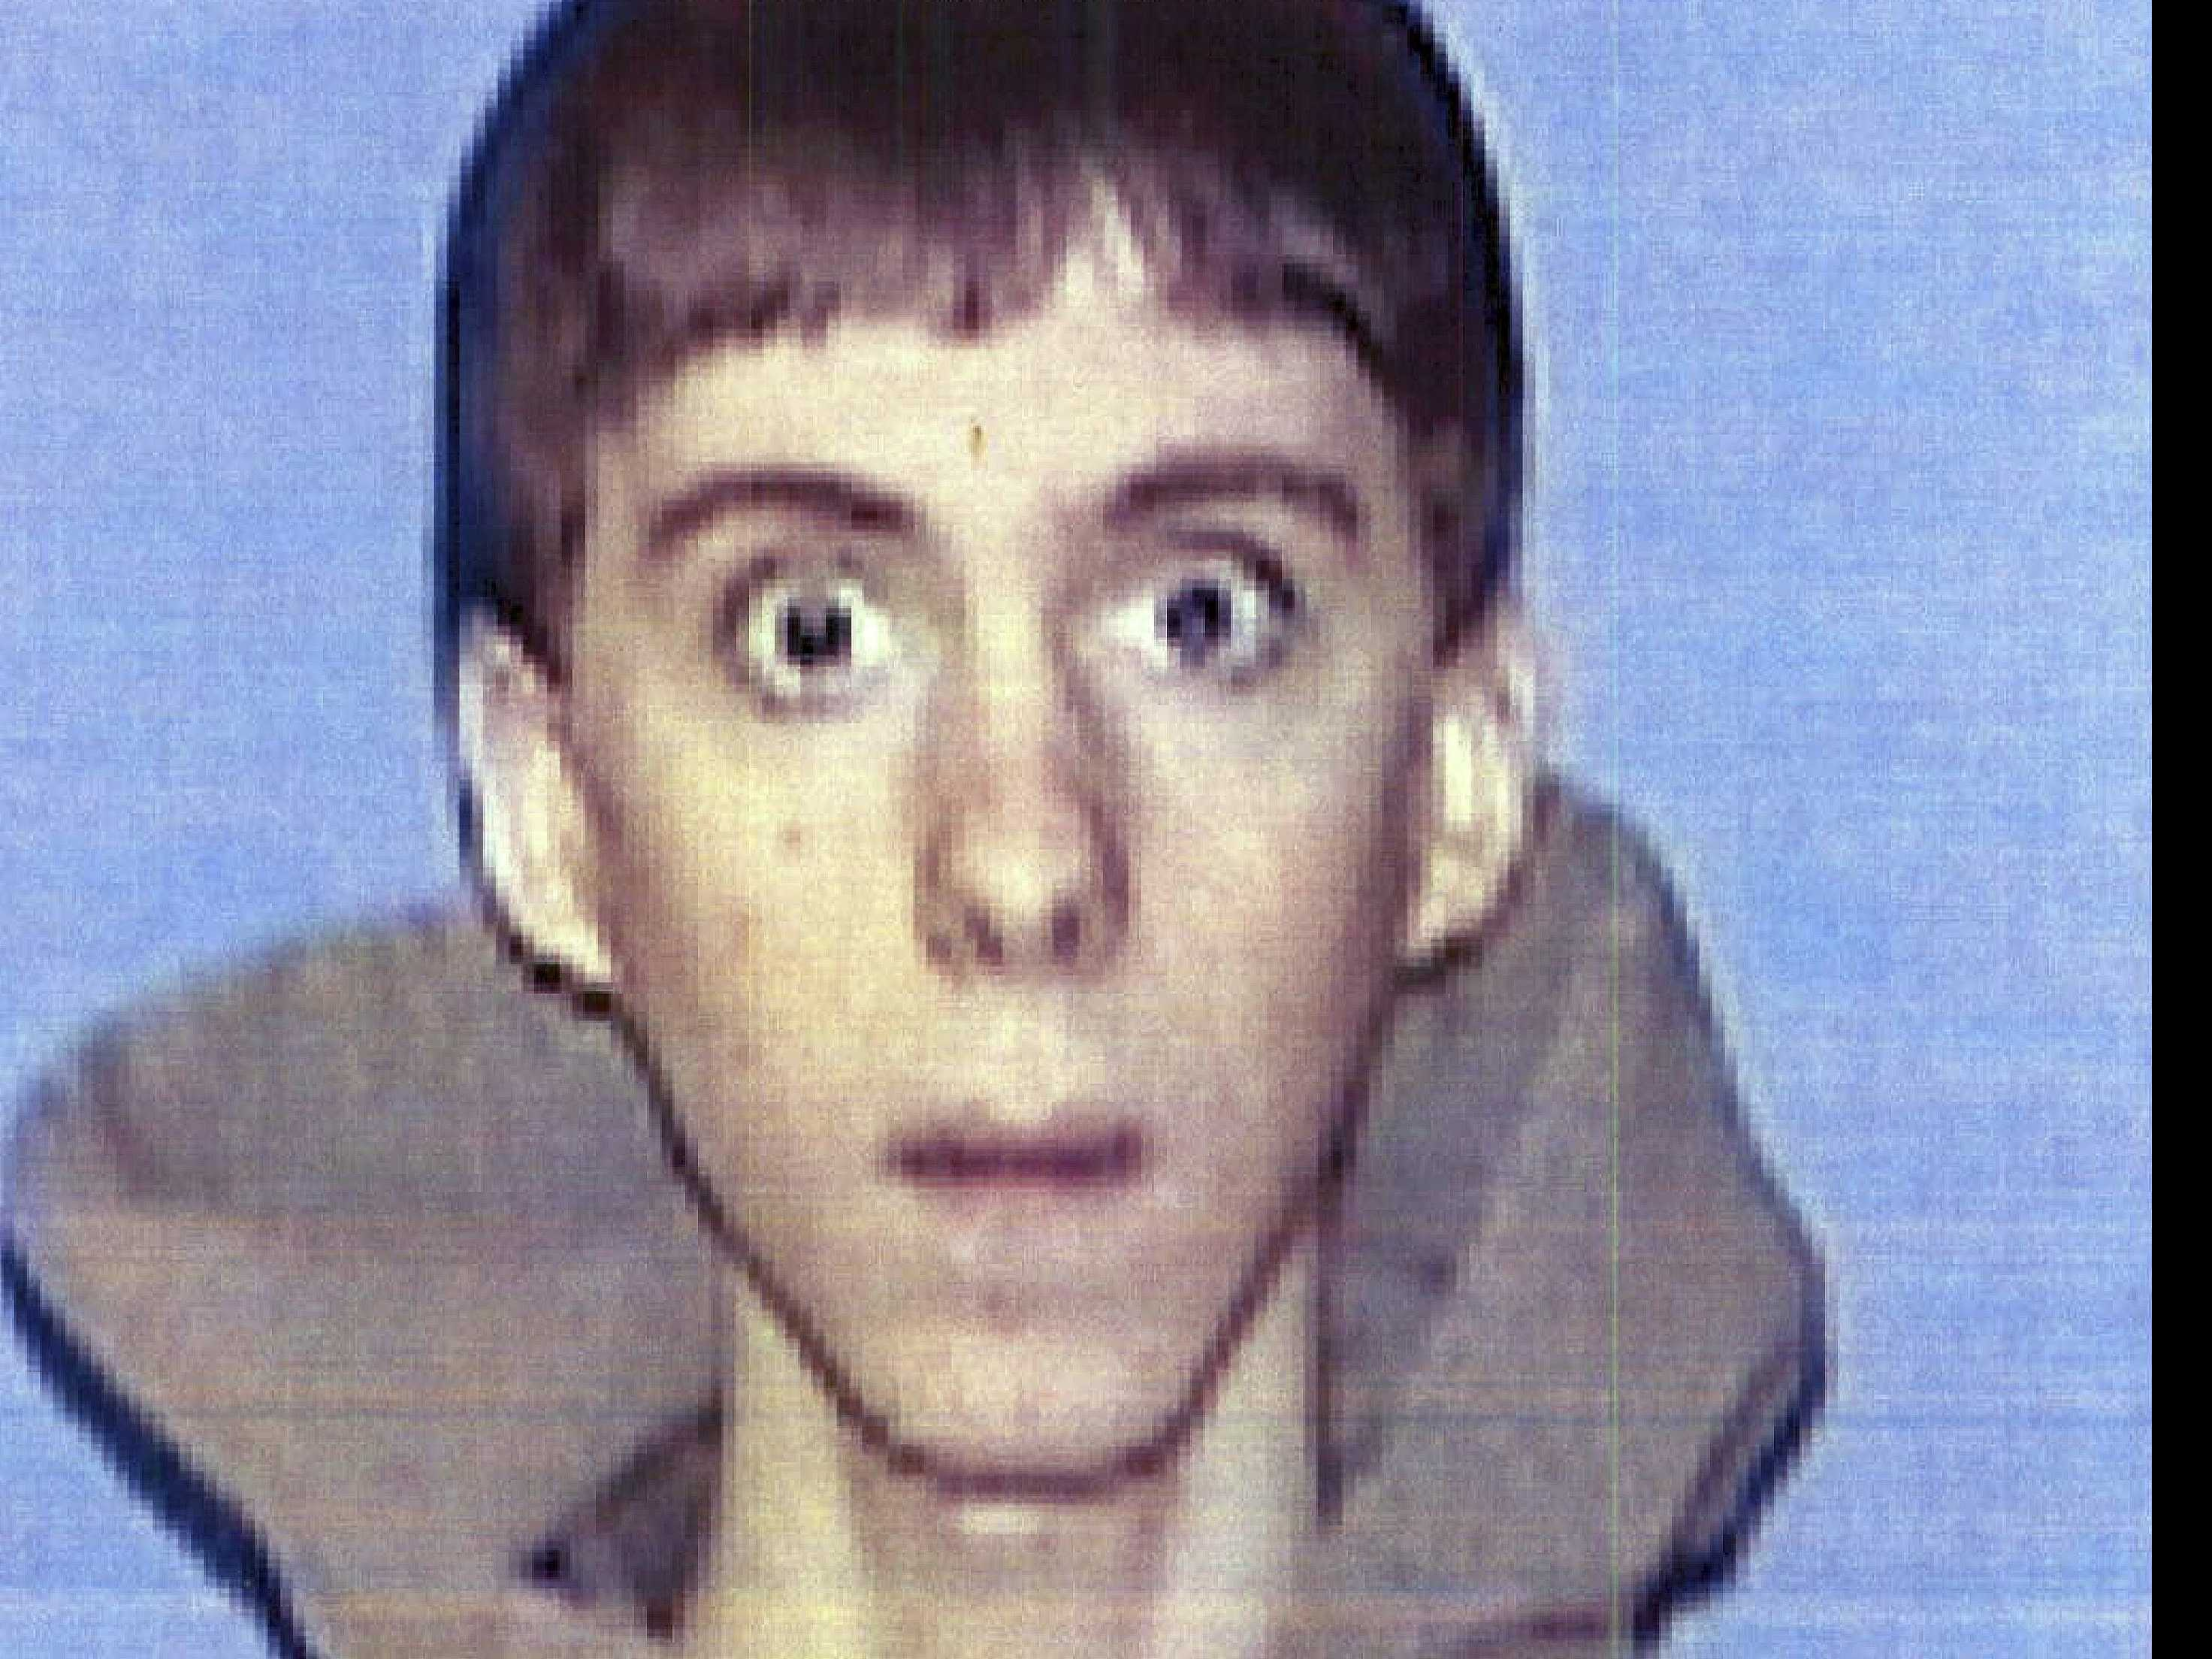 Researchers: Lanza Documents May Boost Study of Mass Killers